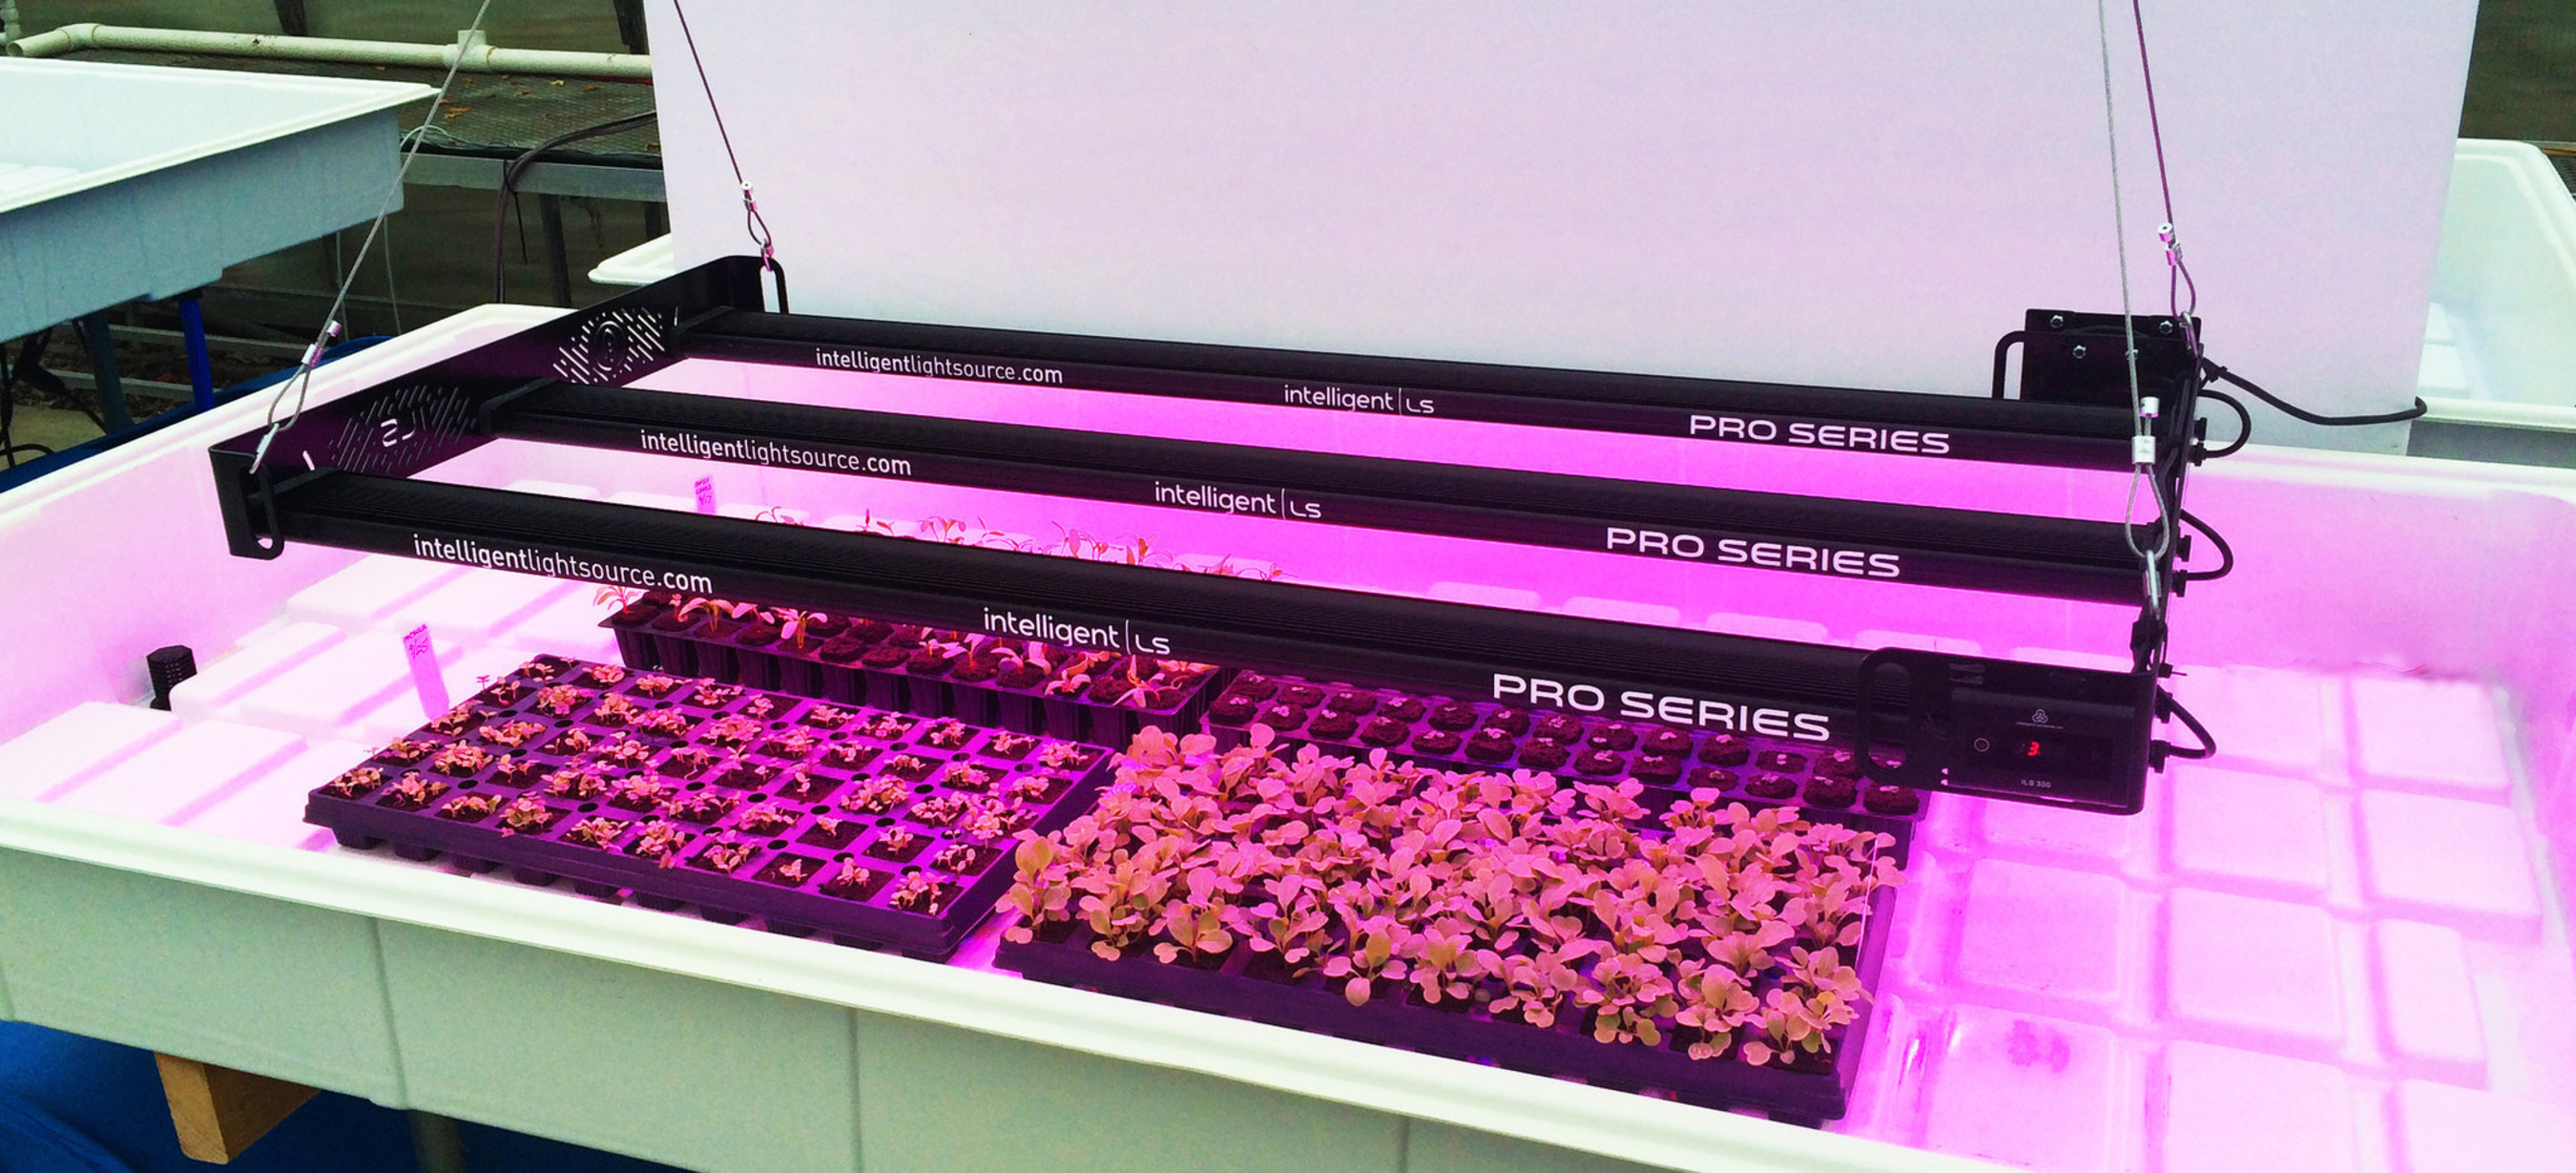 ILS is positioned to become a leader in the indoor grow light industry projected to reach $3.6 B by 2020